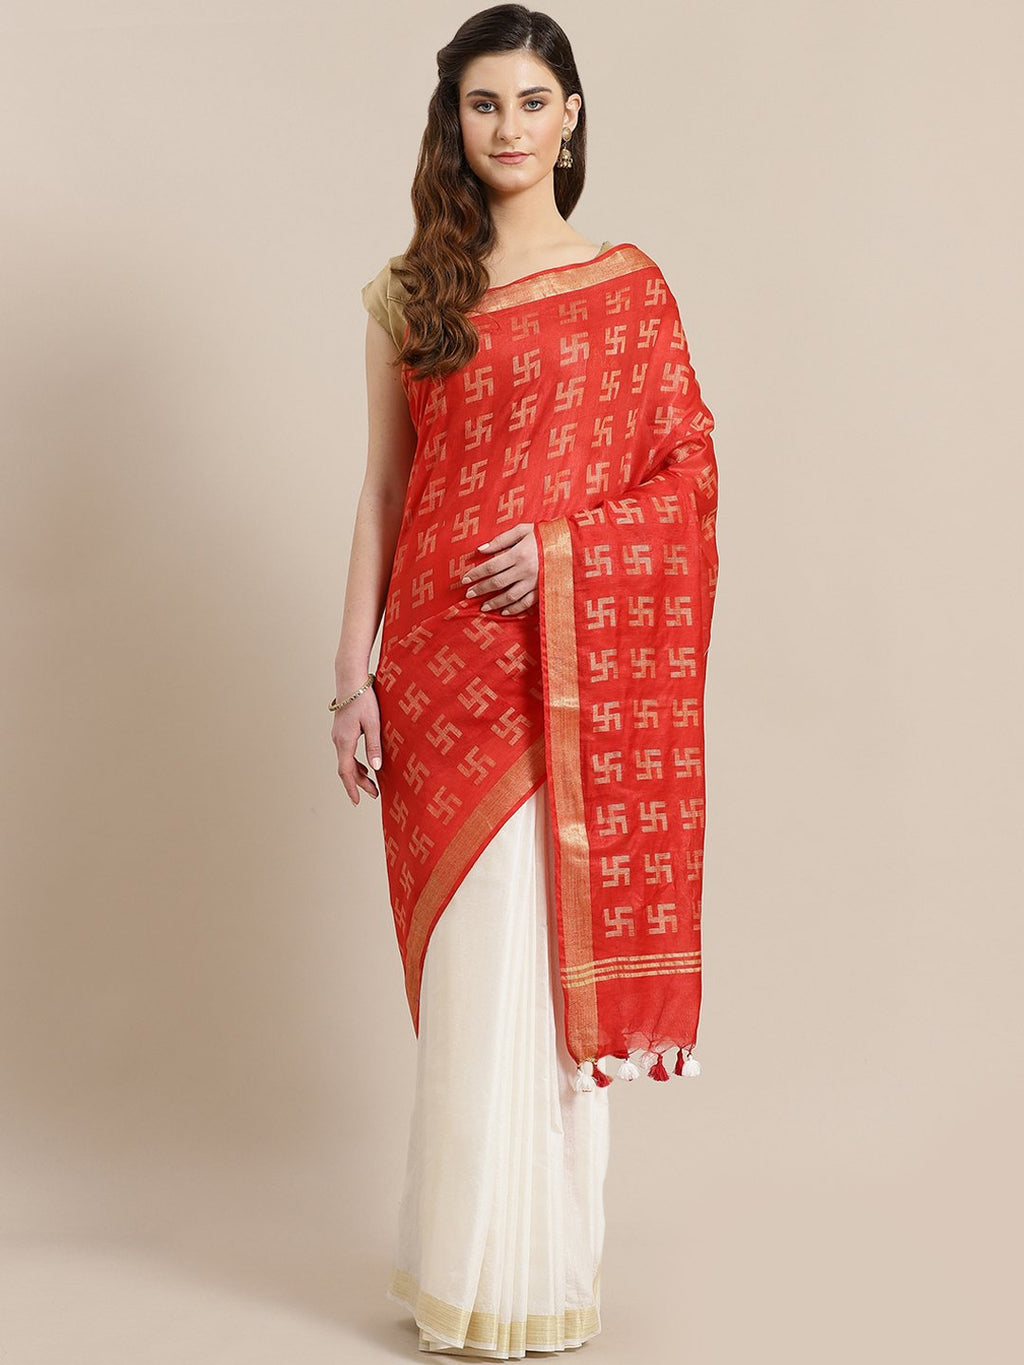 Red White Zari Handwoven Woven Design Saree-Saree-Kalakari India-ALBGSA0002-Hand Crafted Sustainable Fabrics, Kota Silk, Linen, Sarees, Traditional Weave-[Linen,Ethnic,wear,Fashionista,Handloom,Handicraft,Indigo,blockprint,block,print,Cotton,Chanderi,Blue, latest,classy,party,bollywood,trendy,summer,style,traditional,formal,elegant,unique,style,hand,block,print, dabu,booti,gift,present,glamorous,affordable,collectible,Sari,Saree,printed, holi, Diwali, birthday, anniversary, sustainable, organic,